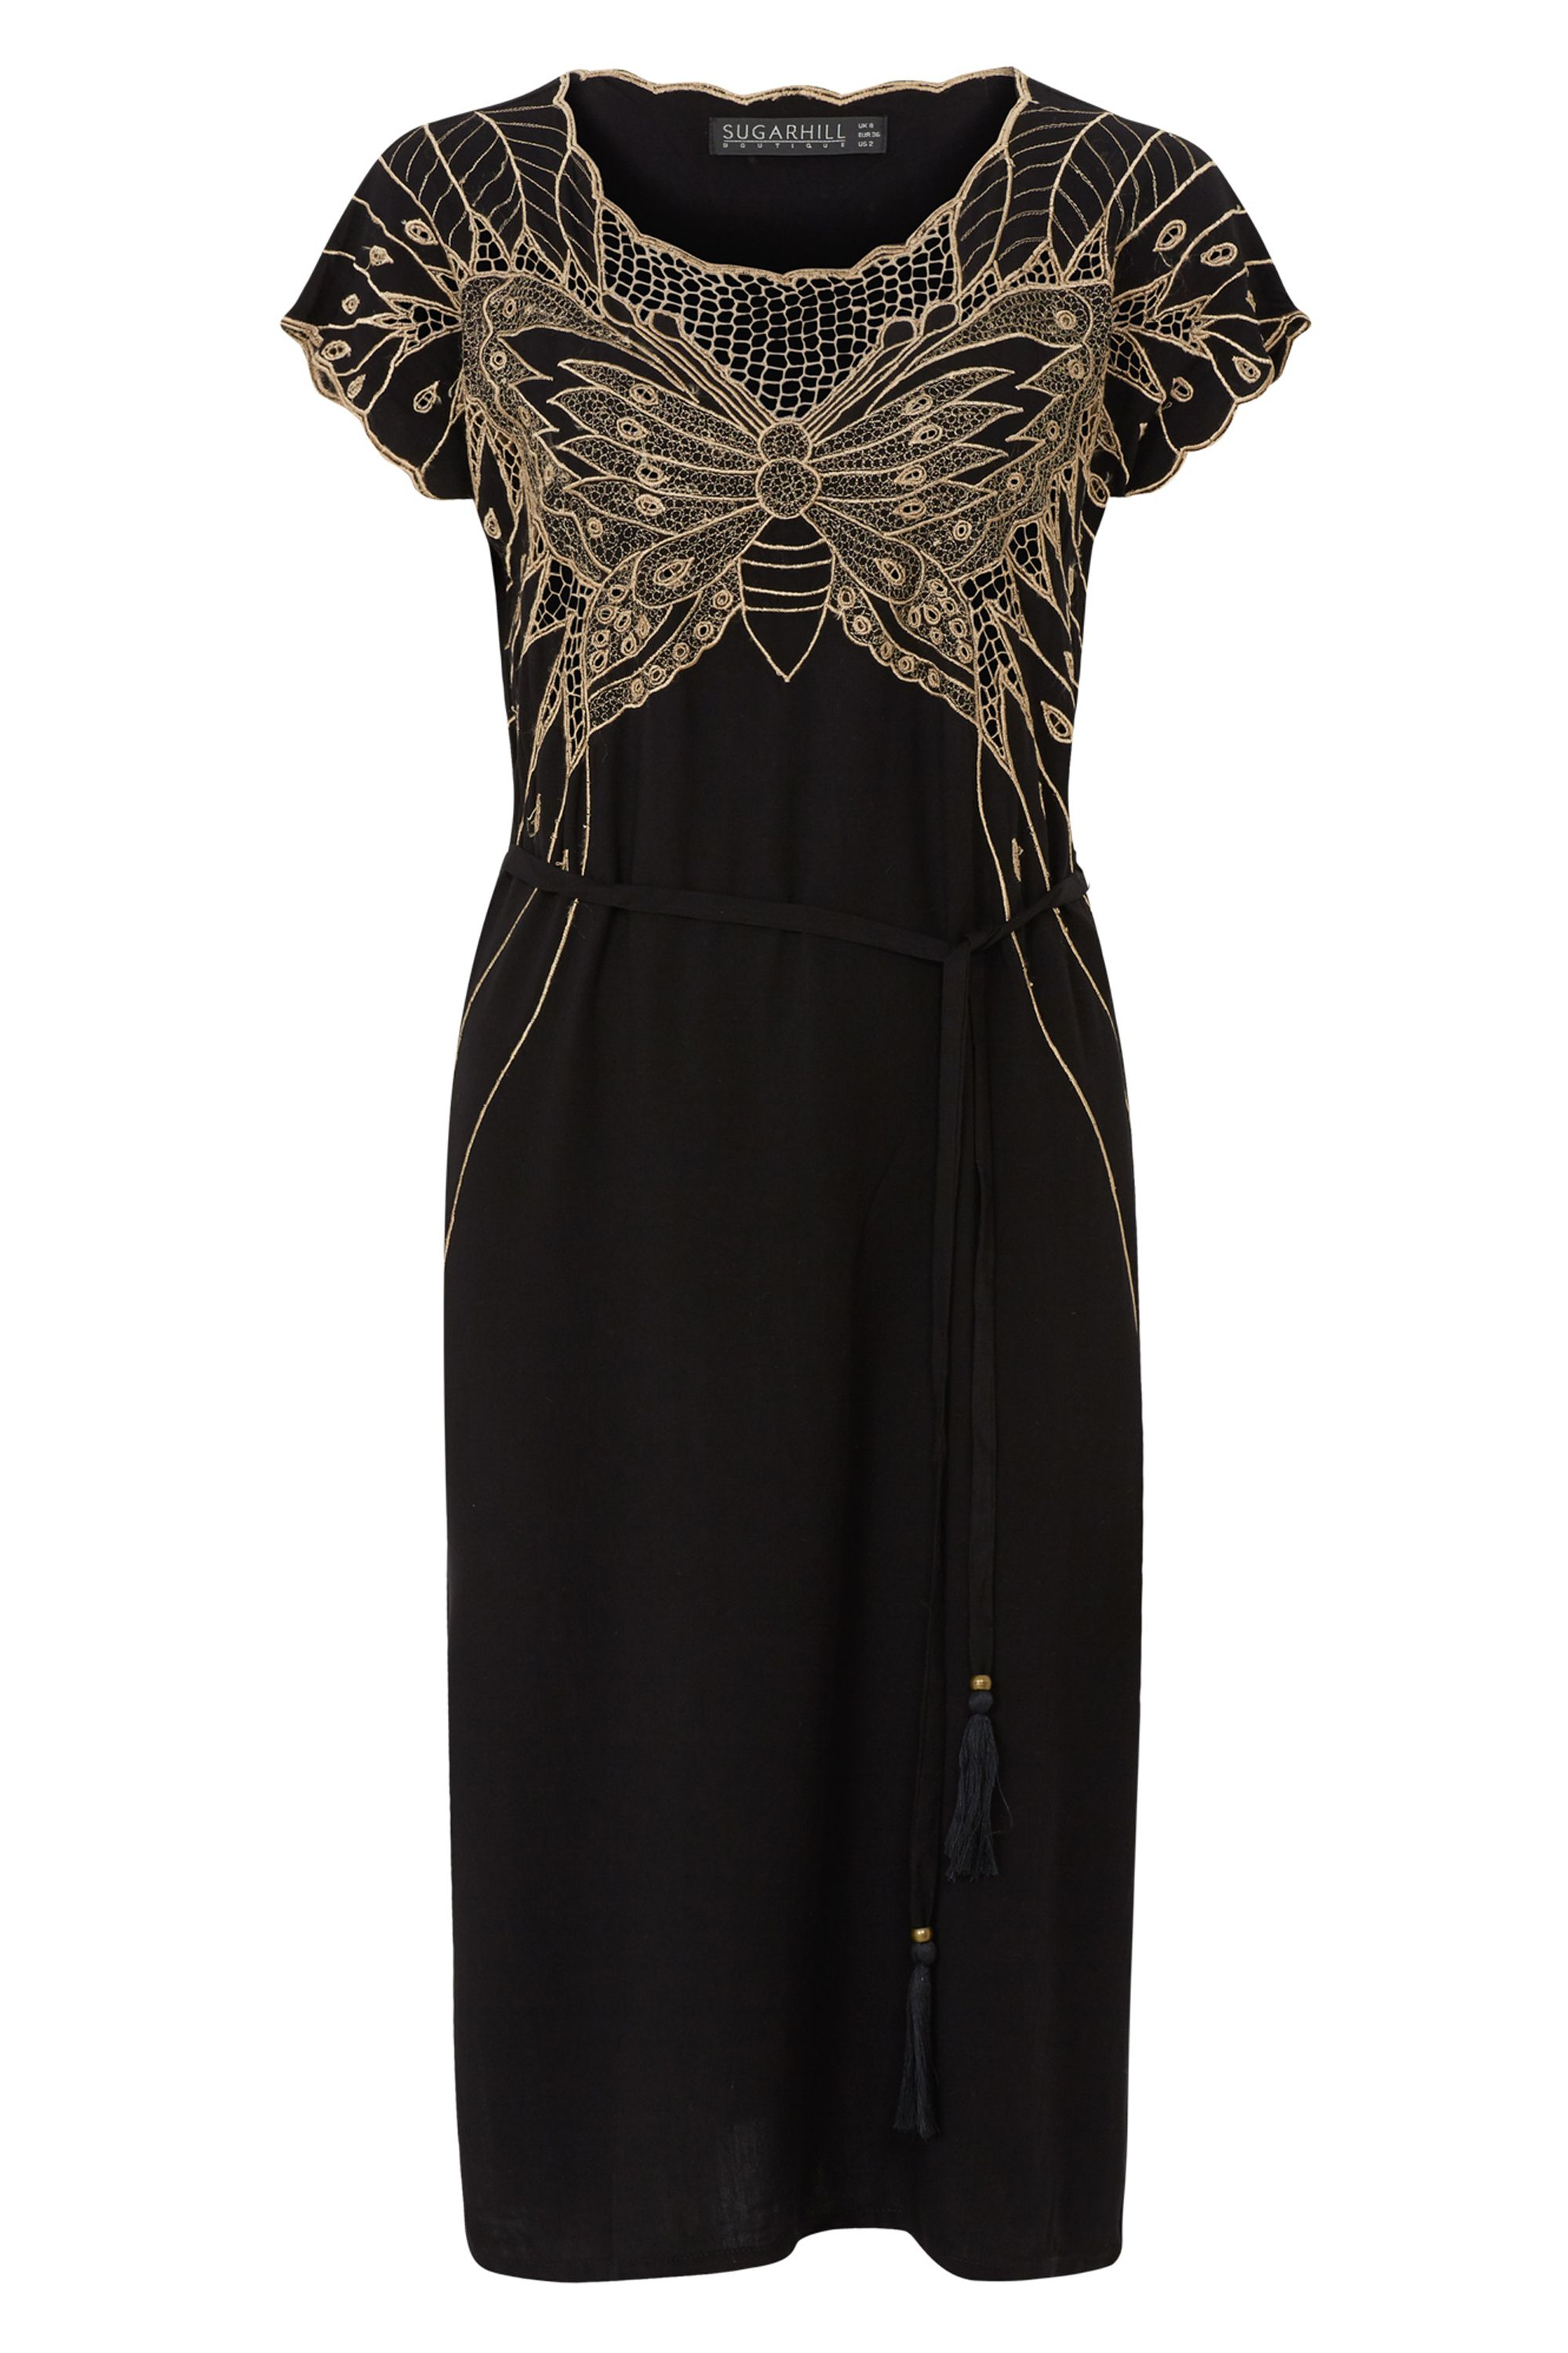 Sugarhill Boutique Butterfly Embroidered Dress, Black